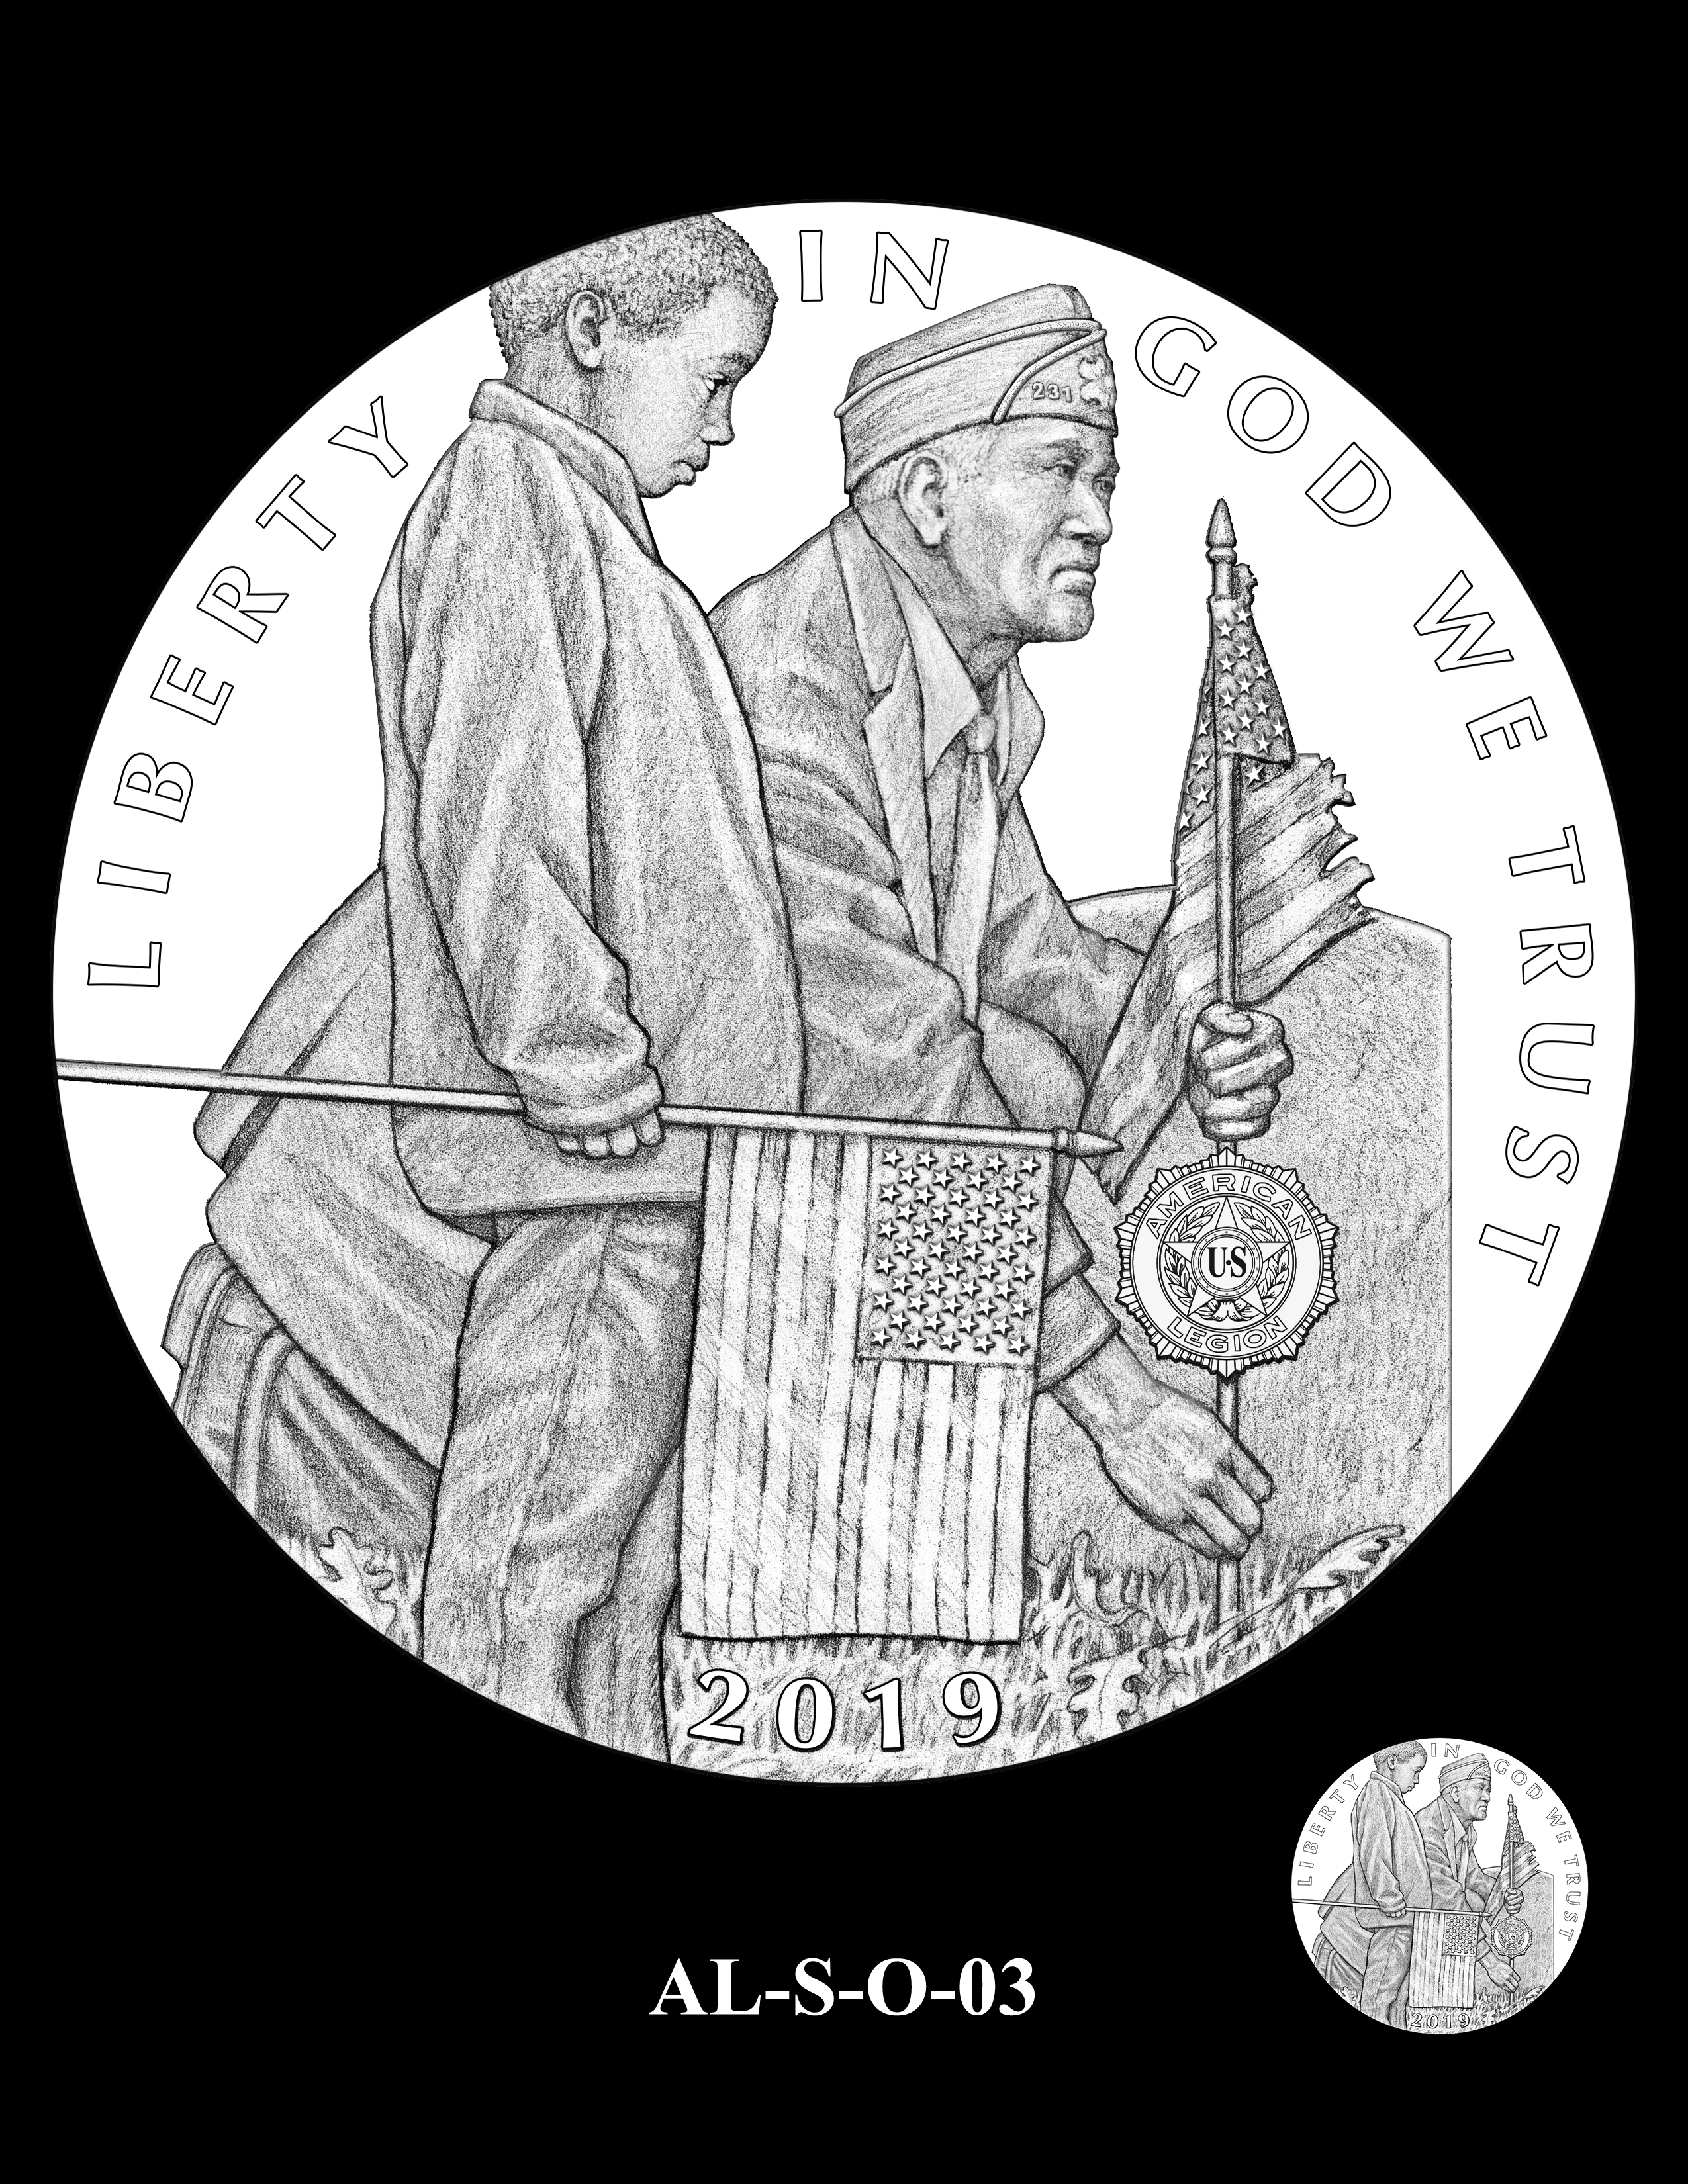 AL-S-O-03 -- 2019 American Legion 100th Anniversary Commemorative Coin Program - Silver Obverse